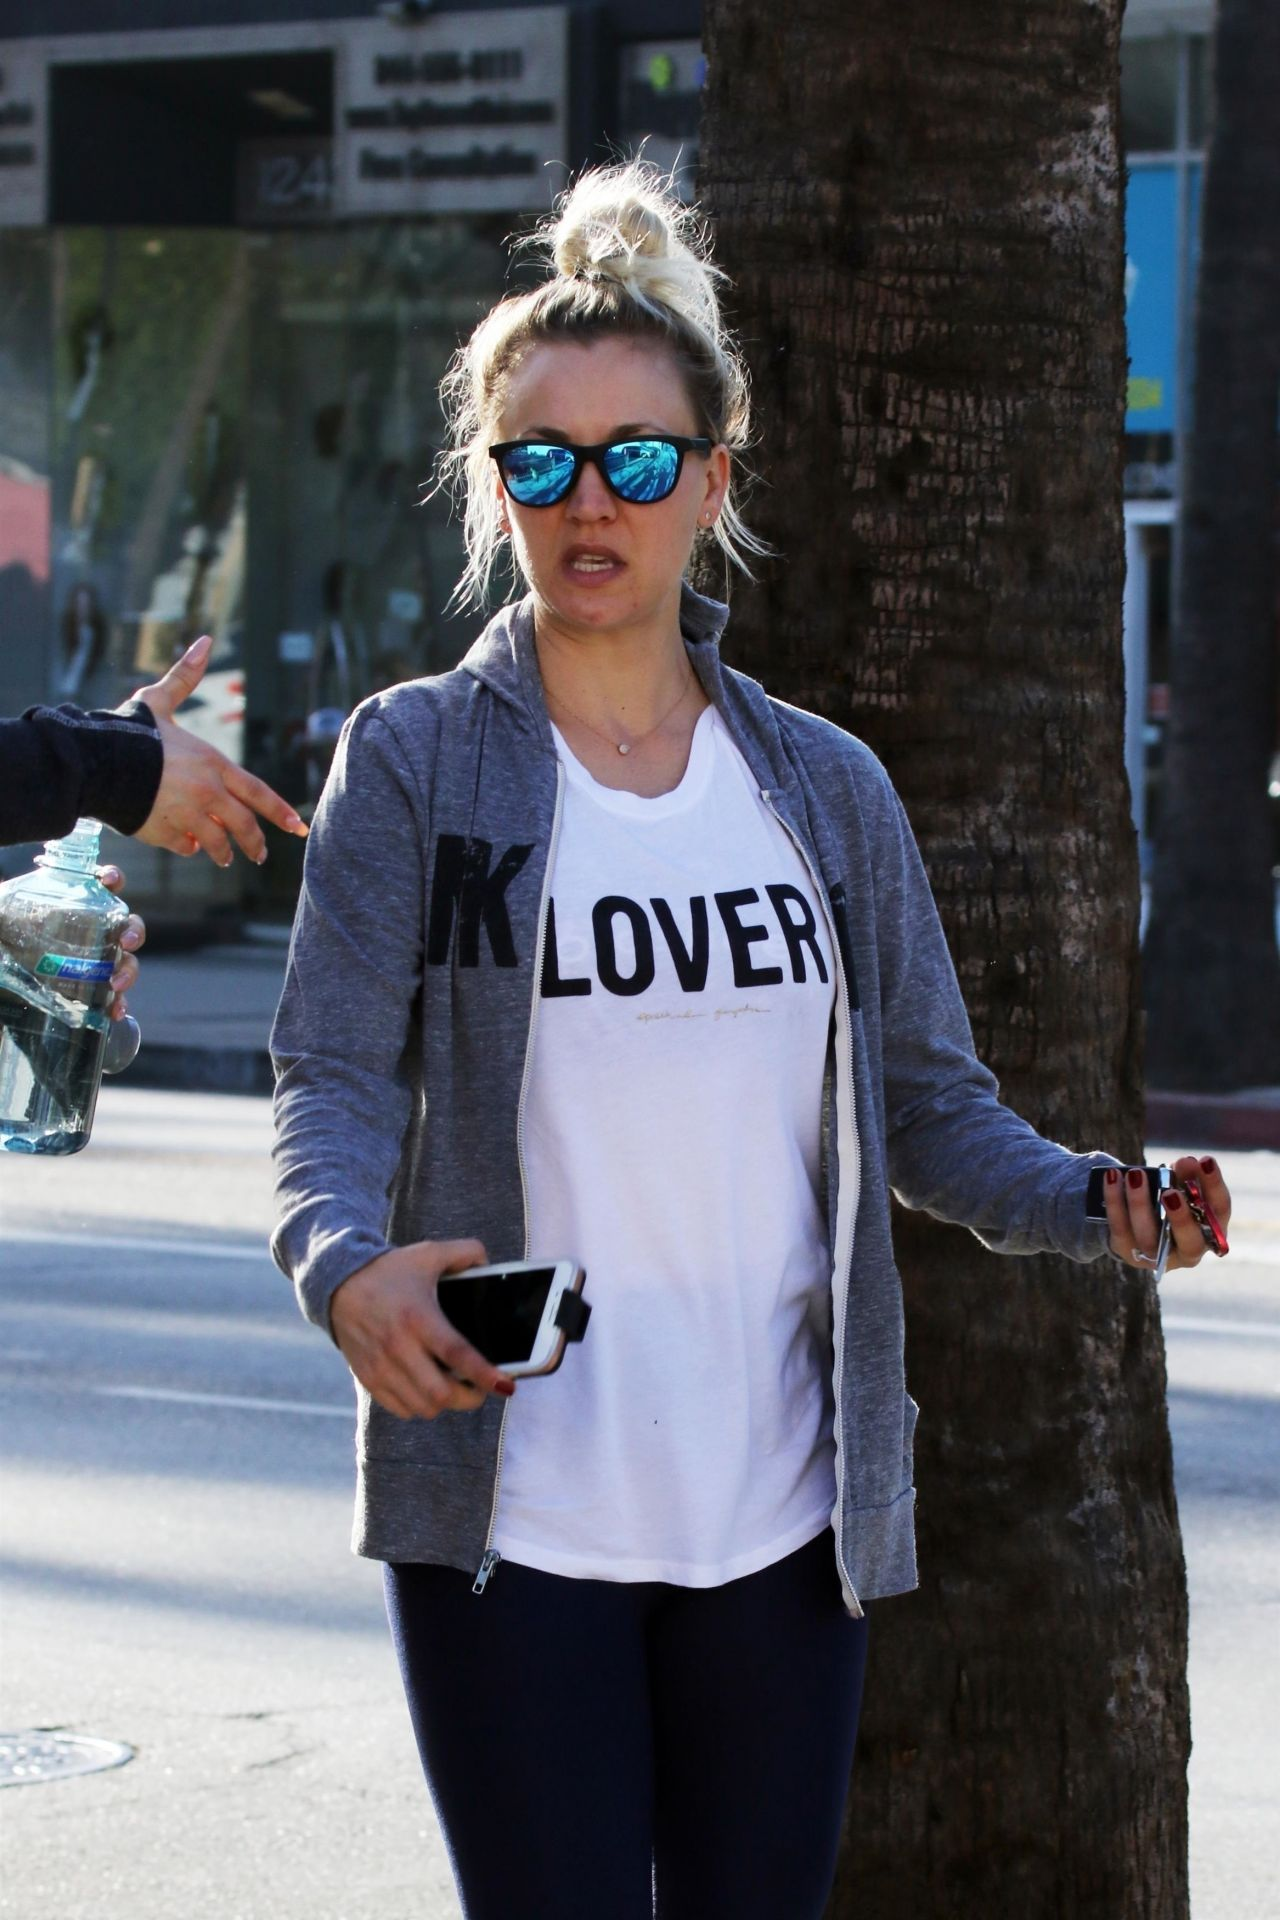 Kaley Cuoco In A White Quot Lover Quot T Shirt Studio City 04 11